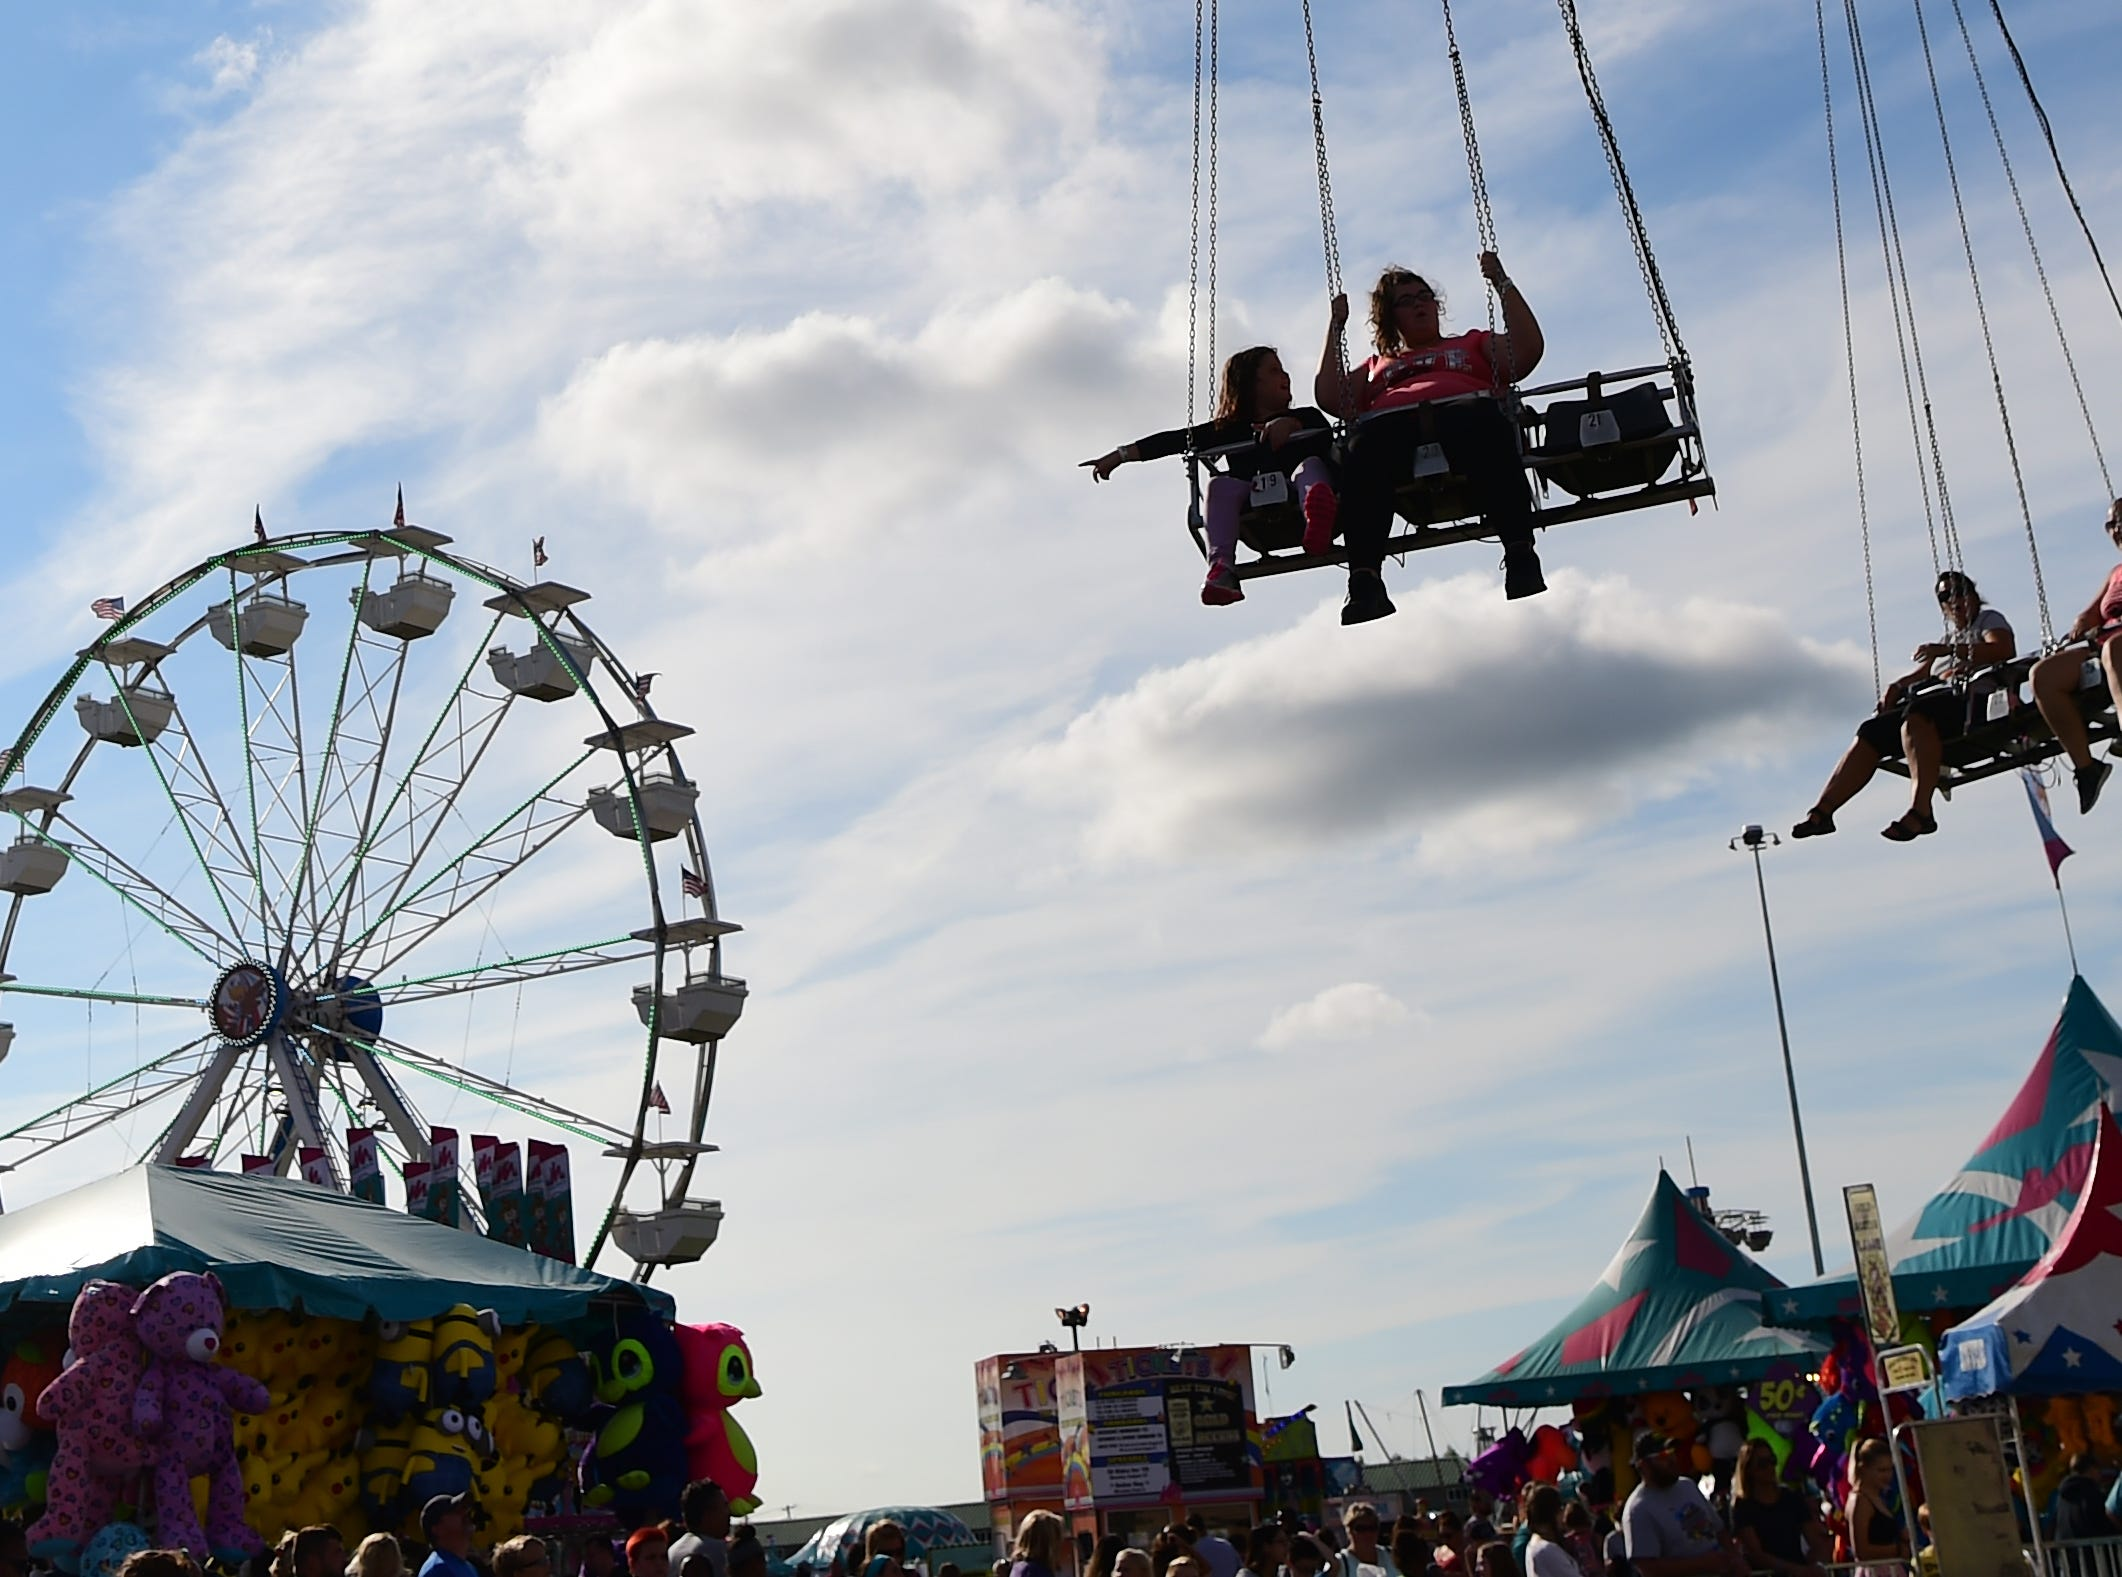 Great New York State Fair is an annual summer tradition that celebrates the agriculture, traditions, foods and people of New York State. The Fair continues through Labor Day at the Fairgrounds near Syracuse, NY. August 30, 2018.